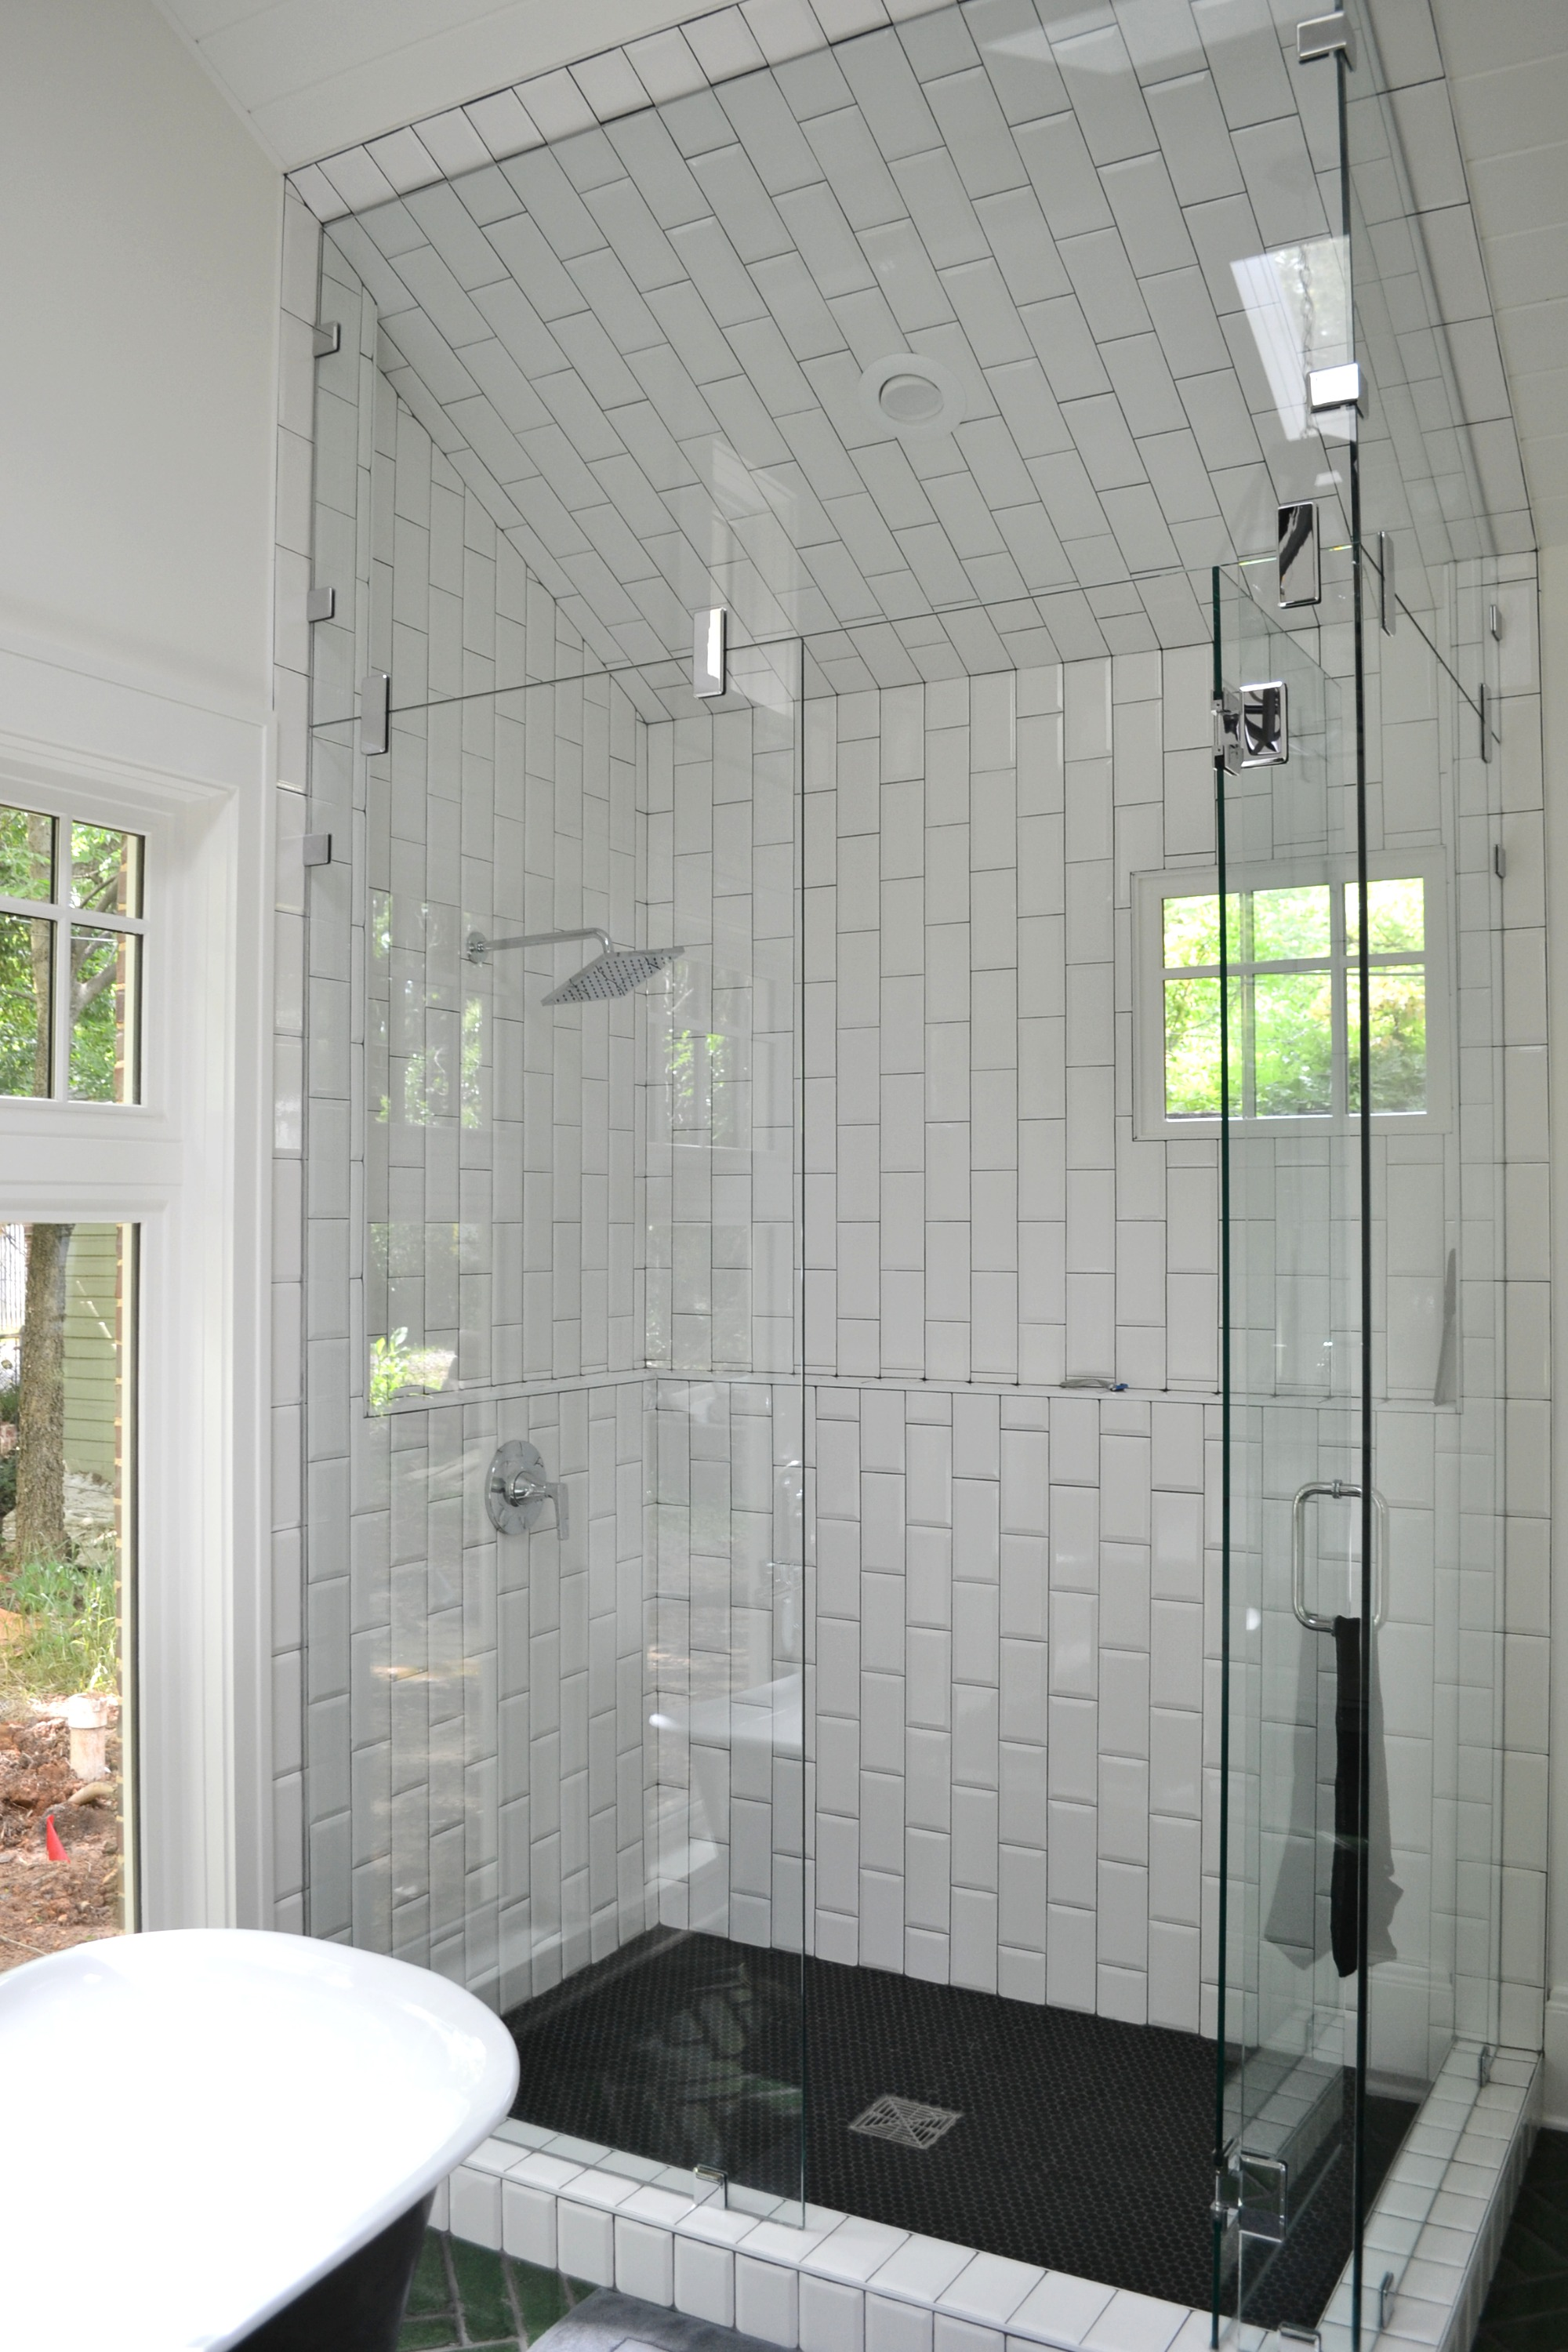 vaulted ceiling in shower